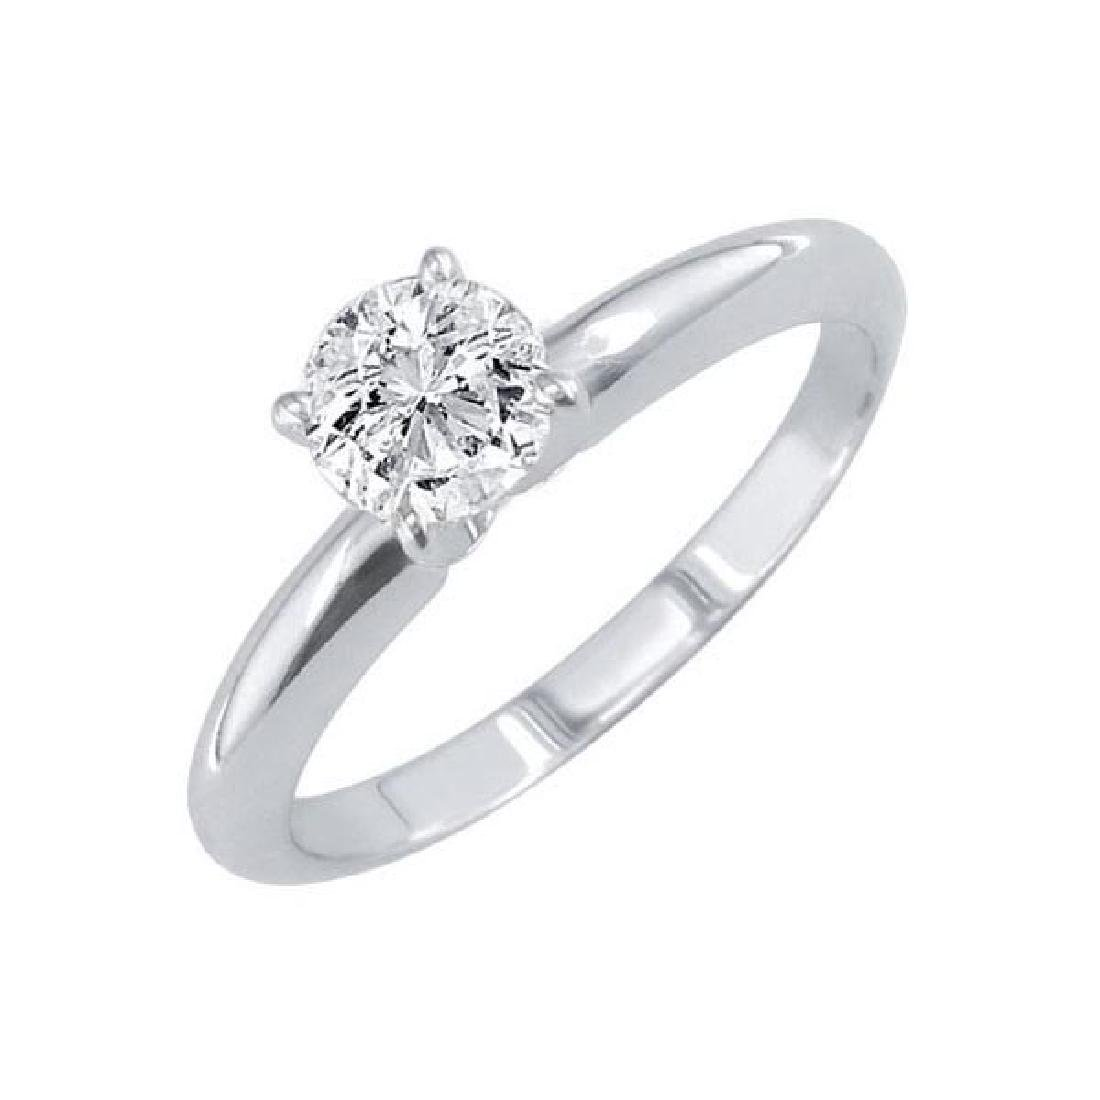 Certified 1.5 CTW Round Diamond Solitaire 14k Ring E/I2